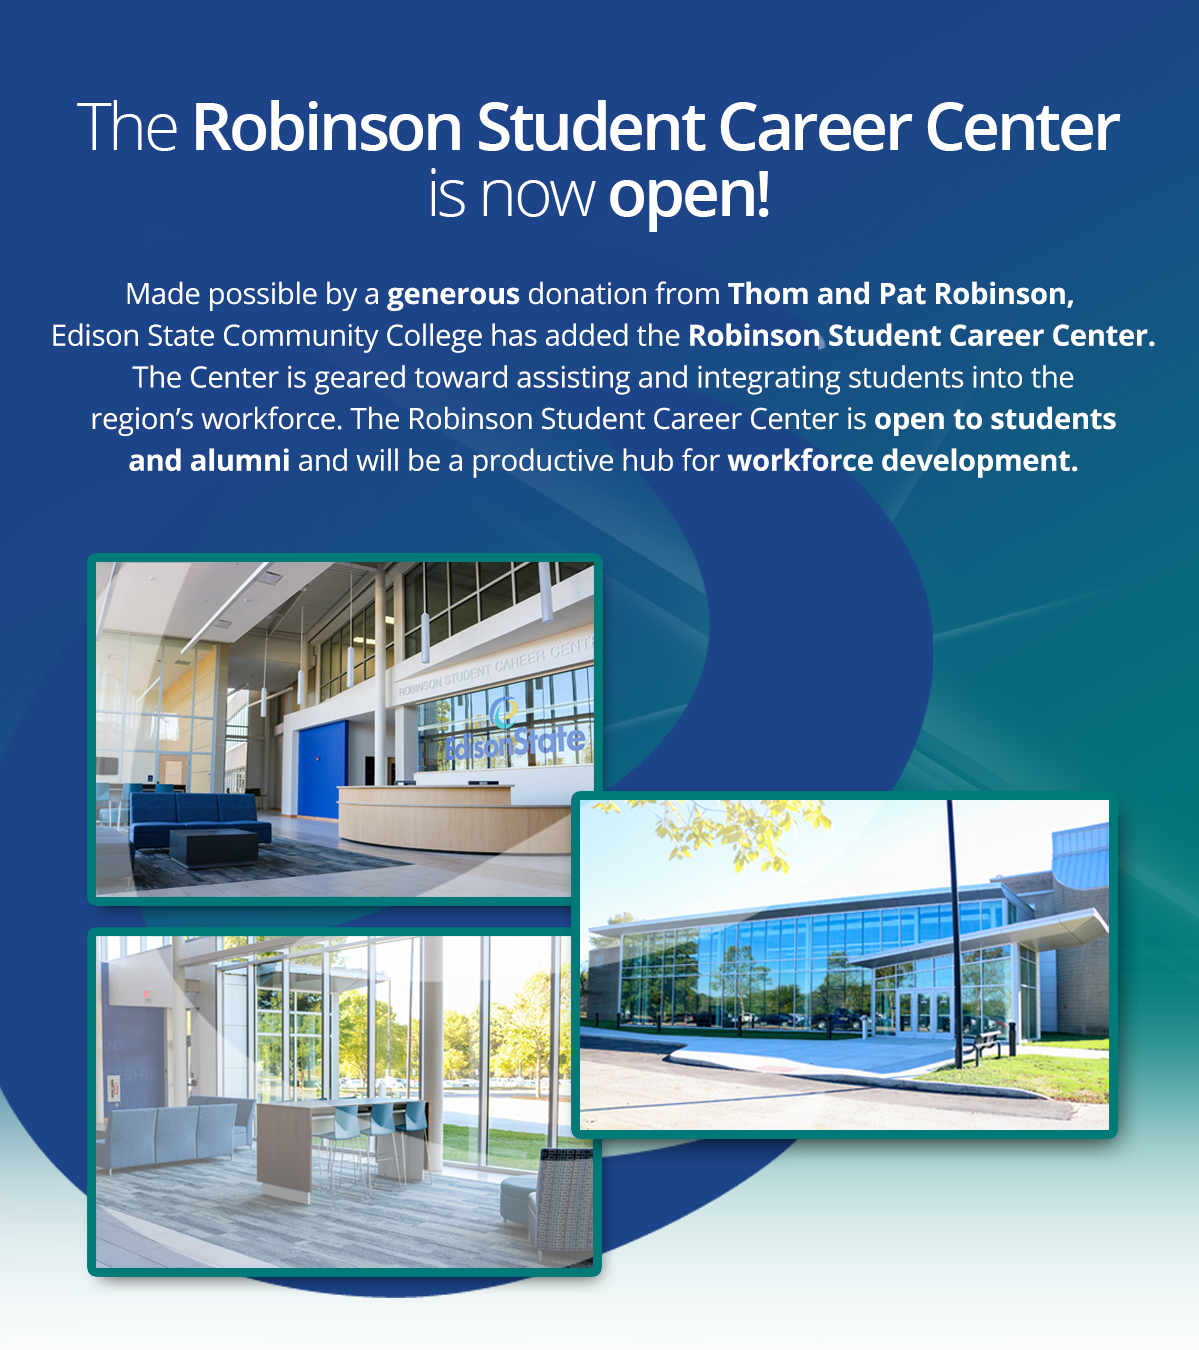 Robinson Student Career Center